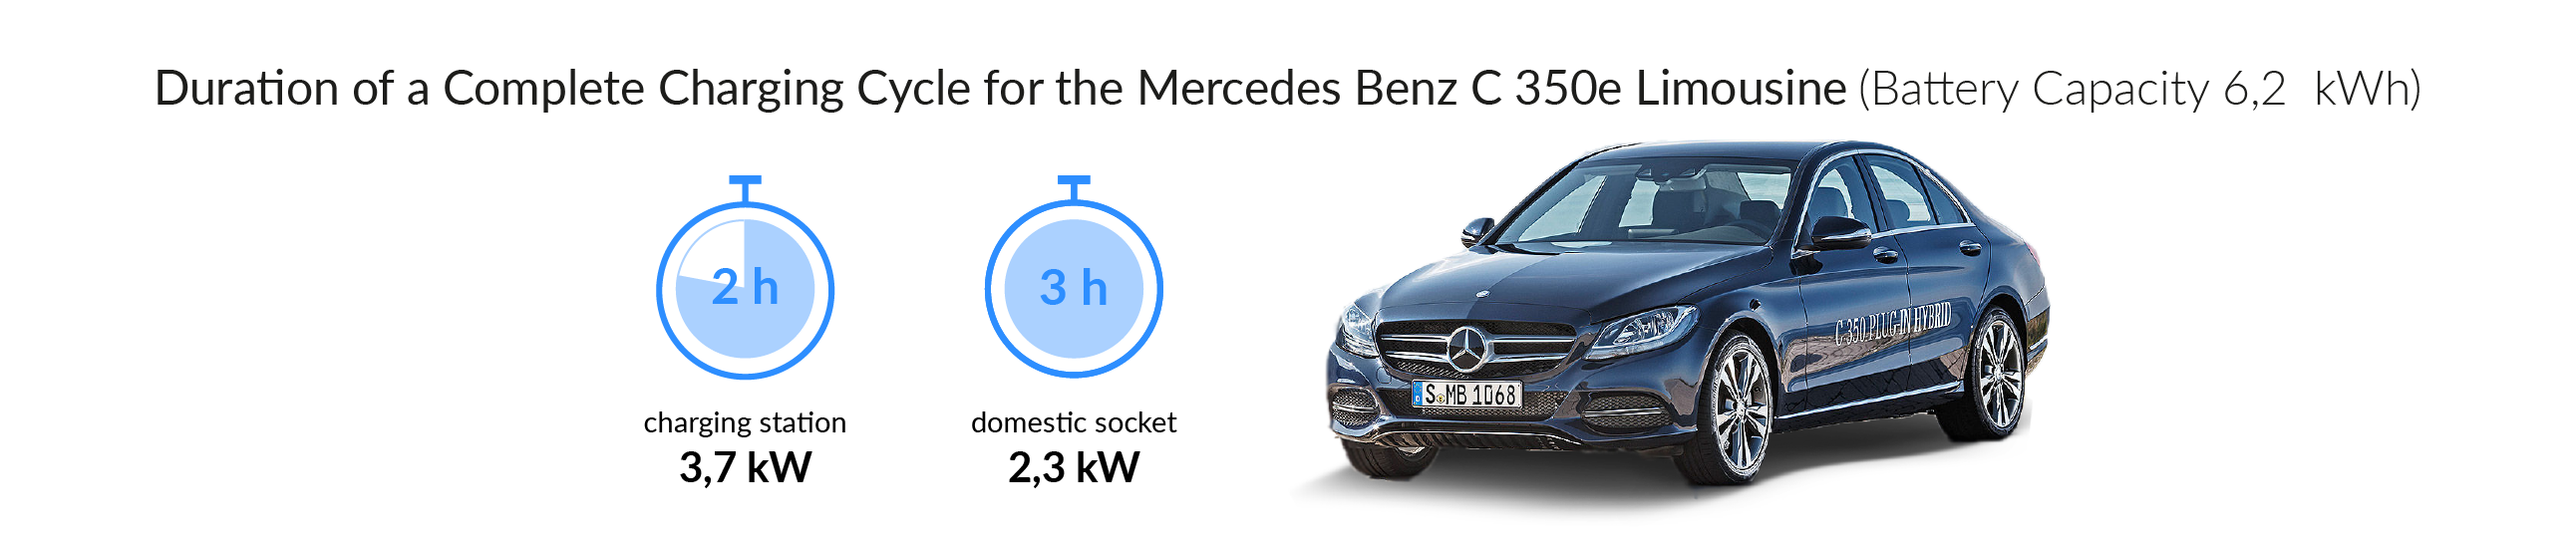 Charging time for the Mercedes-Benz C 350e 4MATIC